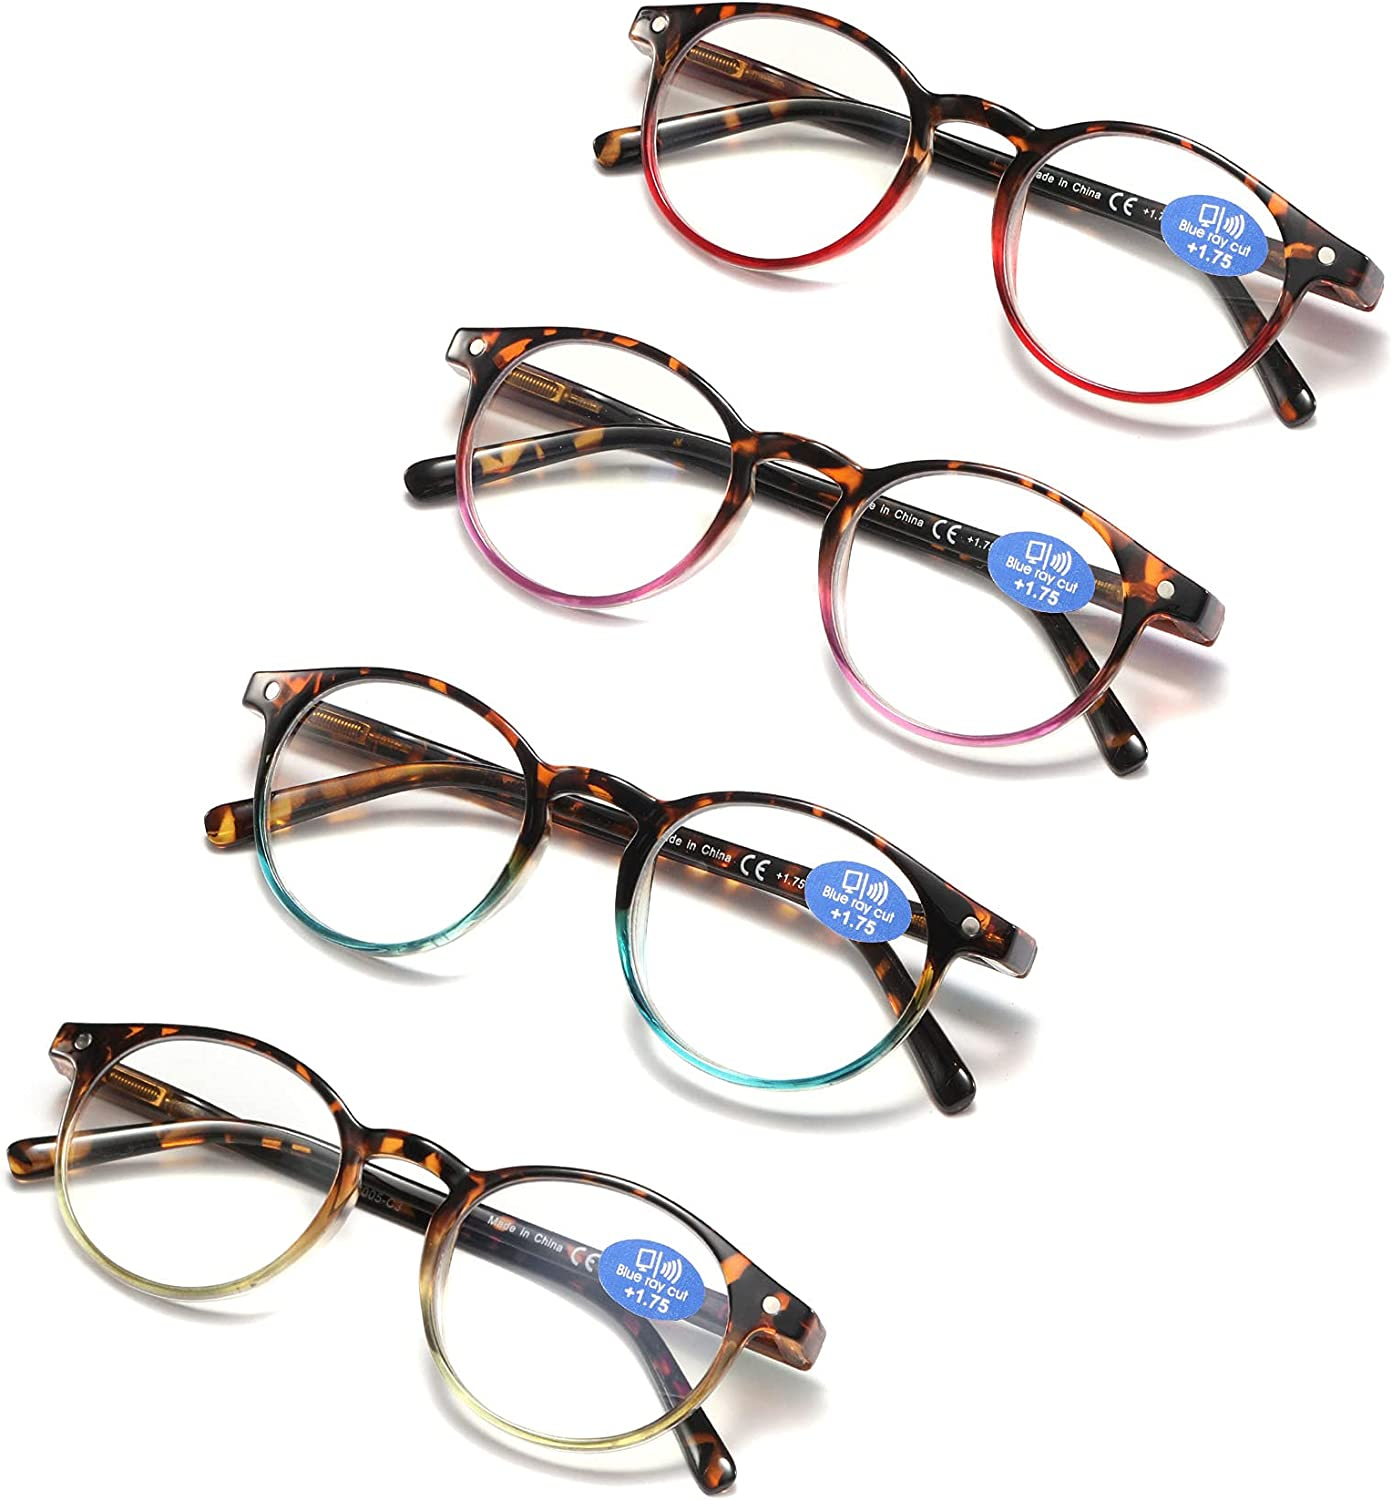 Reading Glasses for Women   Blue Light Blocking Ladies Spring Hinge Readers  with Pouches Anti Eyestrain/Glare Women's Computer Eyeglasses 20 Pairs Mix  ...